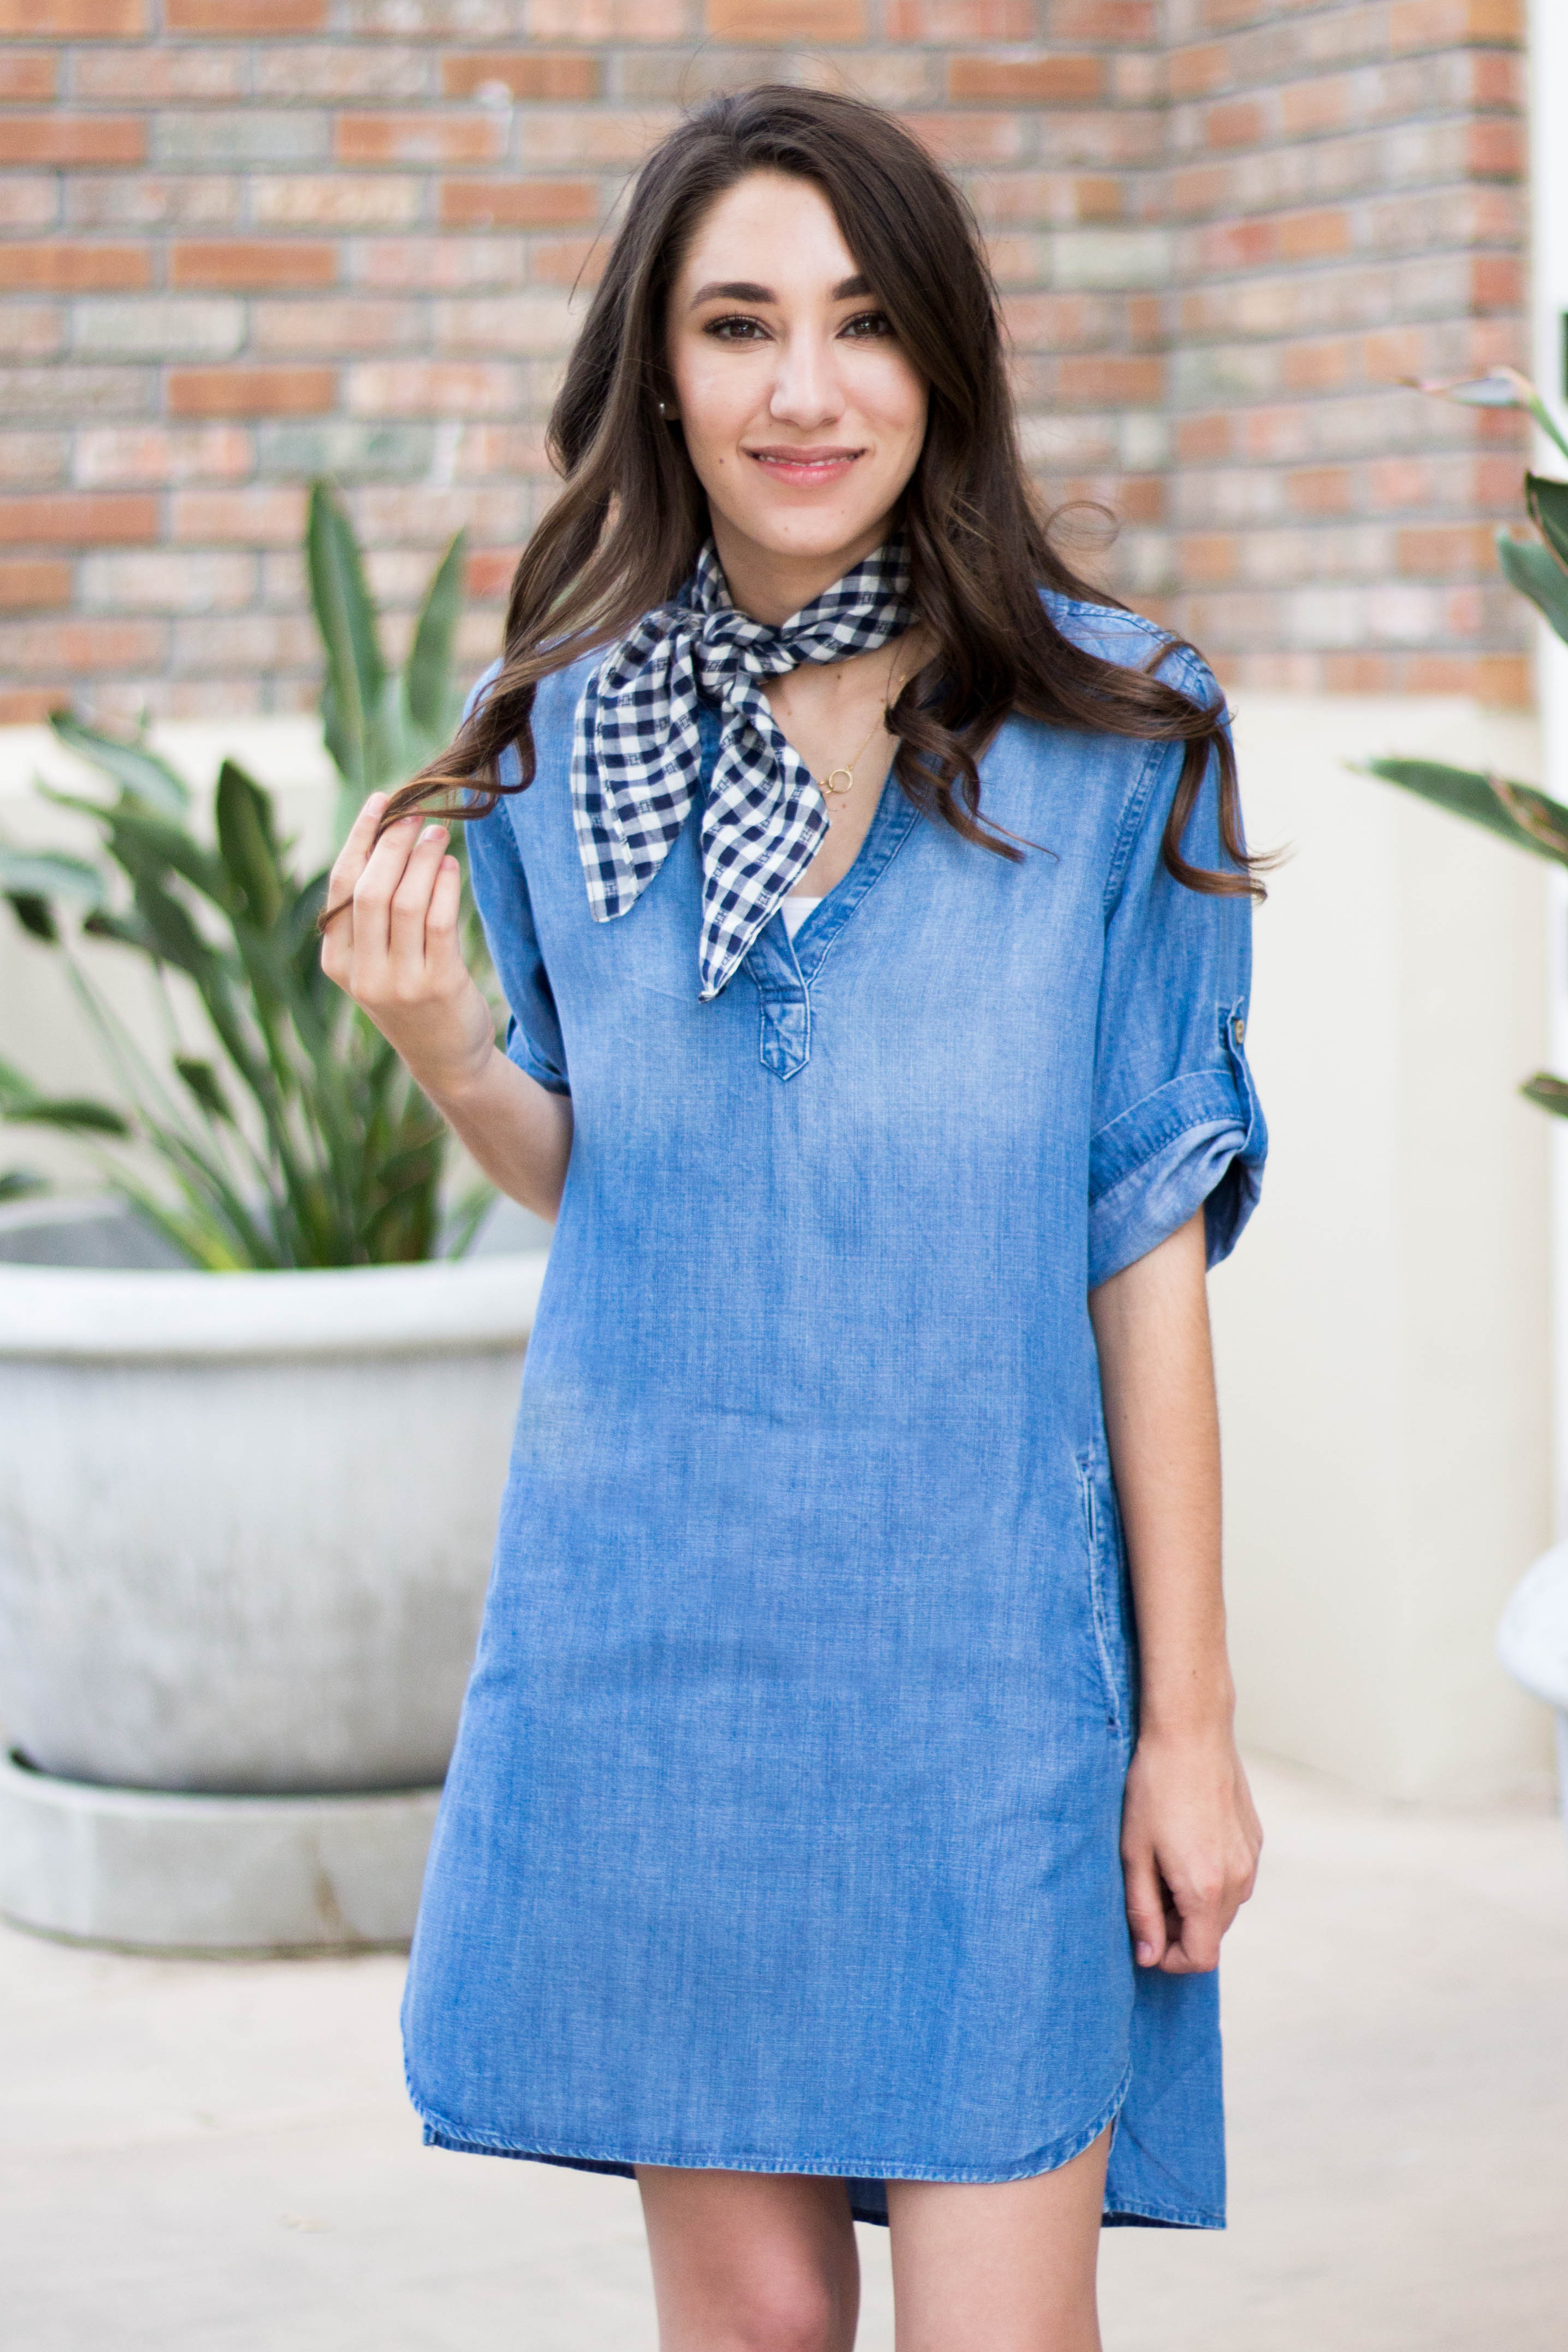 neck scarf and dress outfit